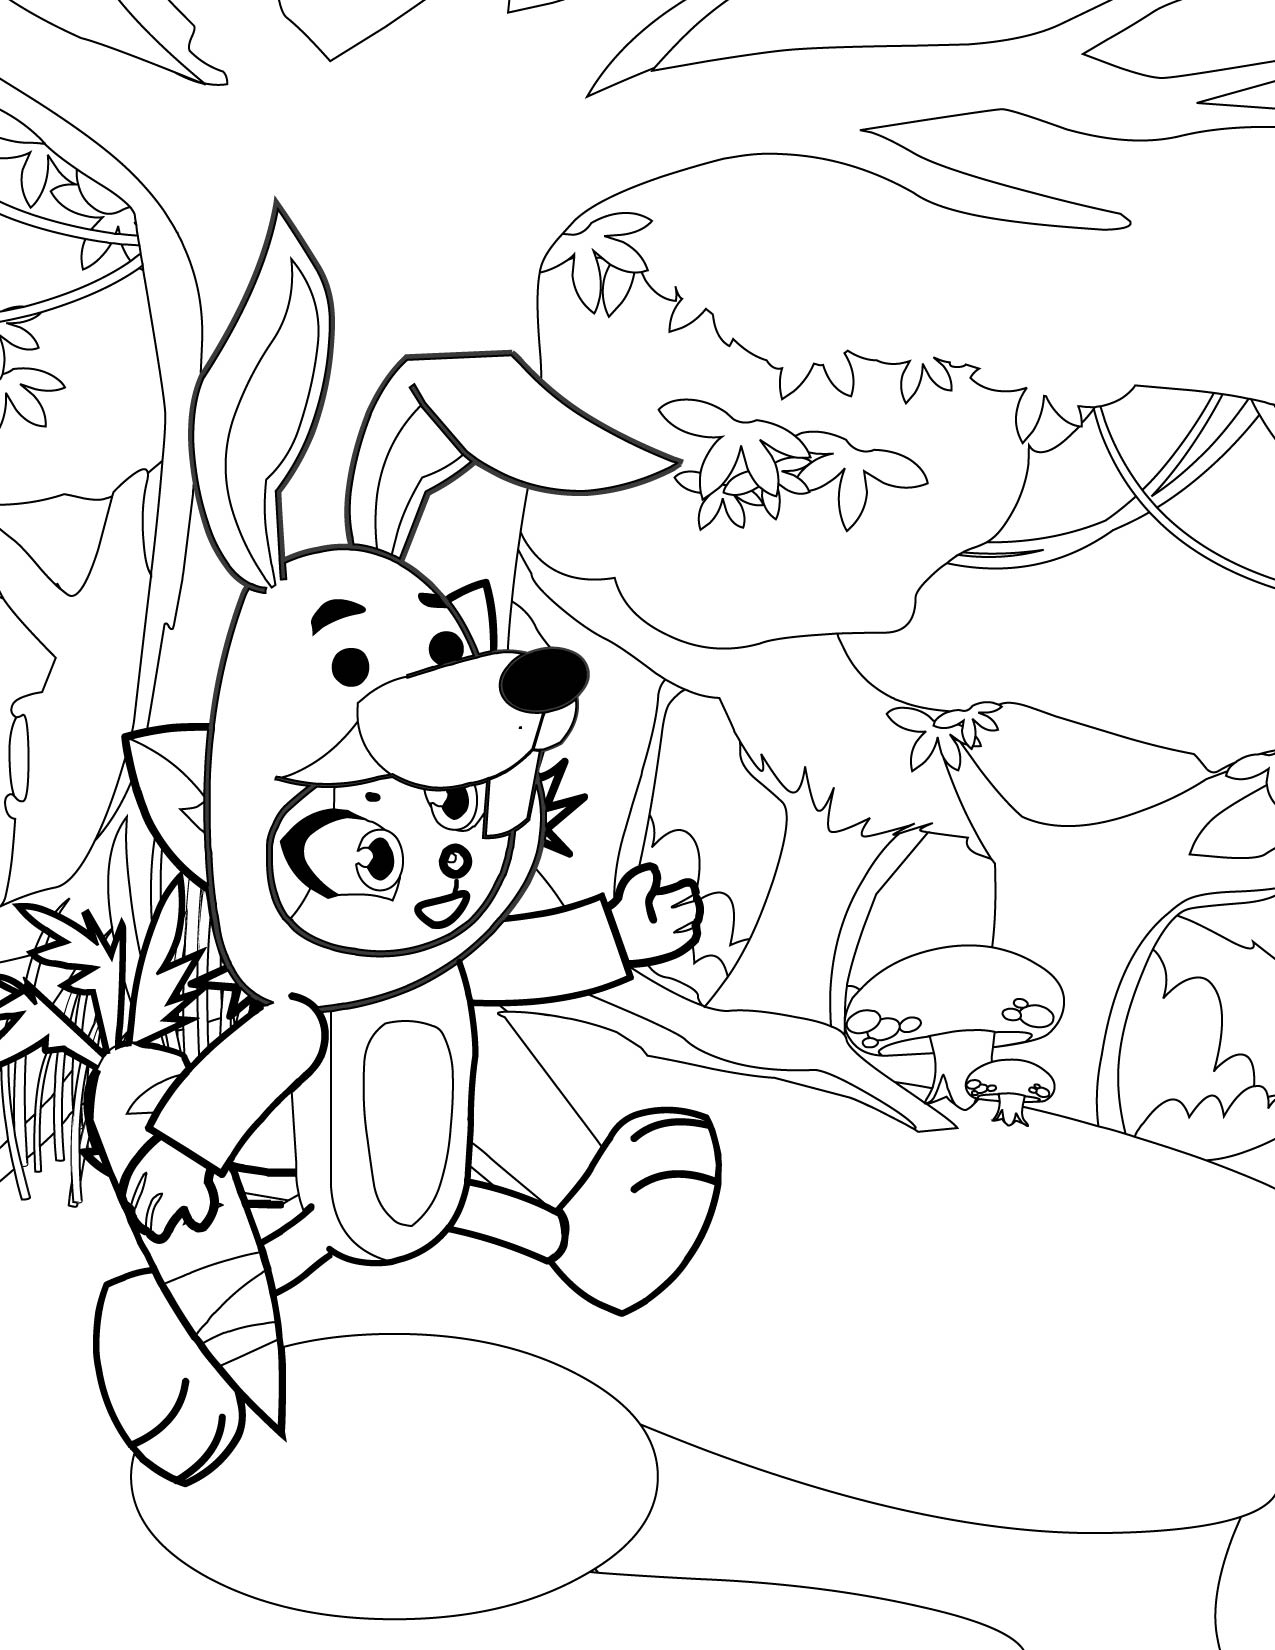 primary games coloring pages - photo#13